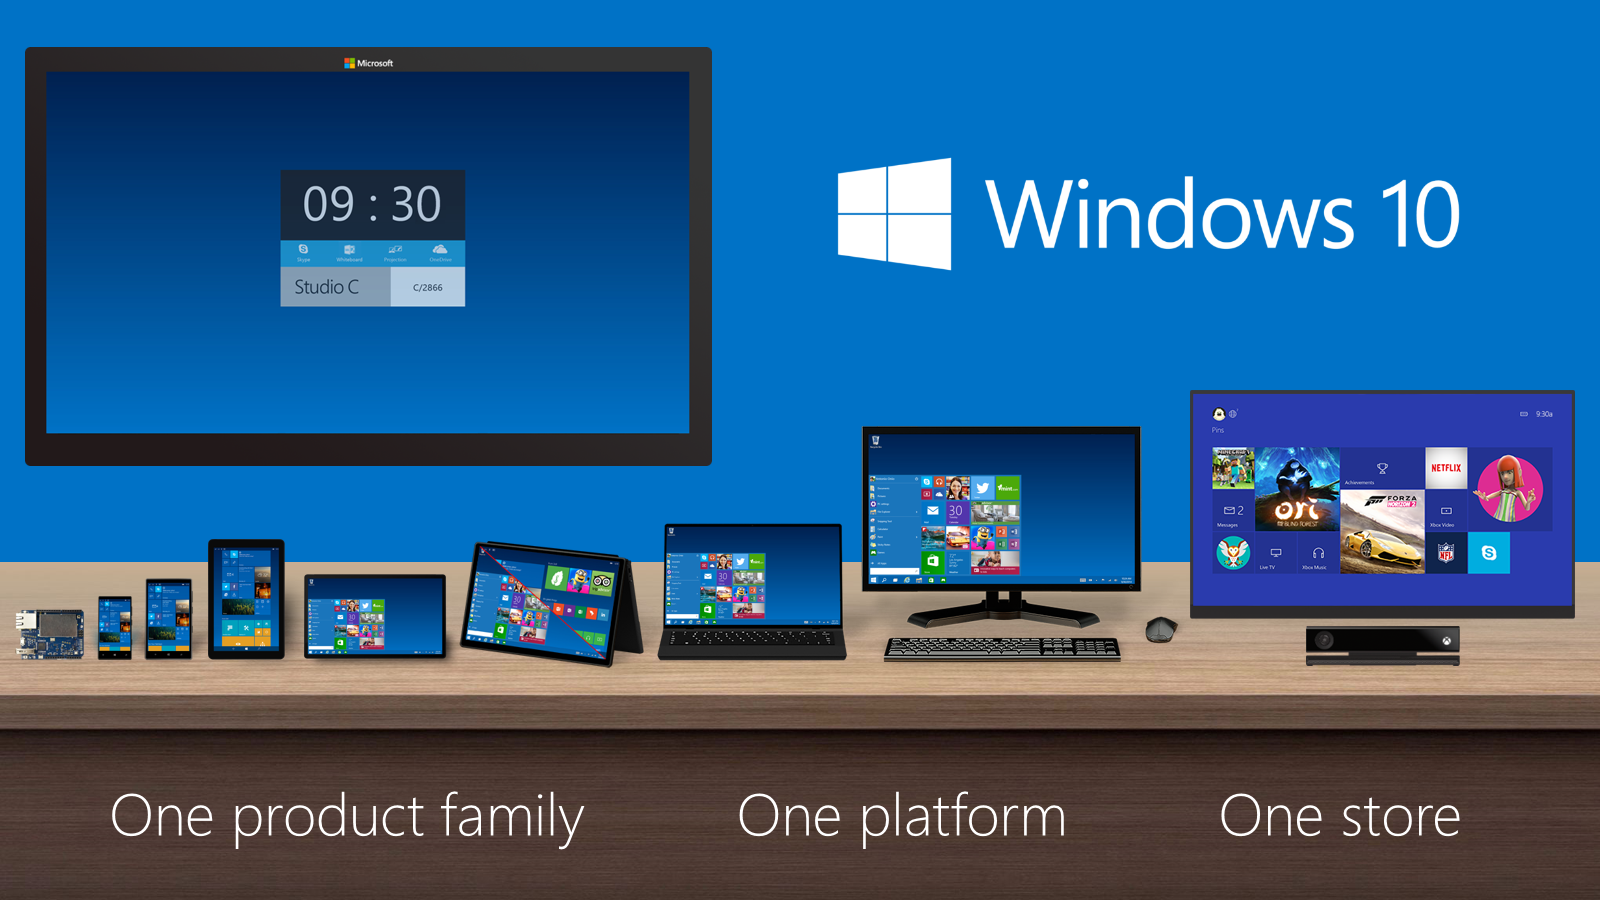 Windows 10 - Main Image